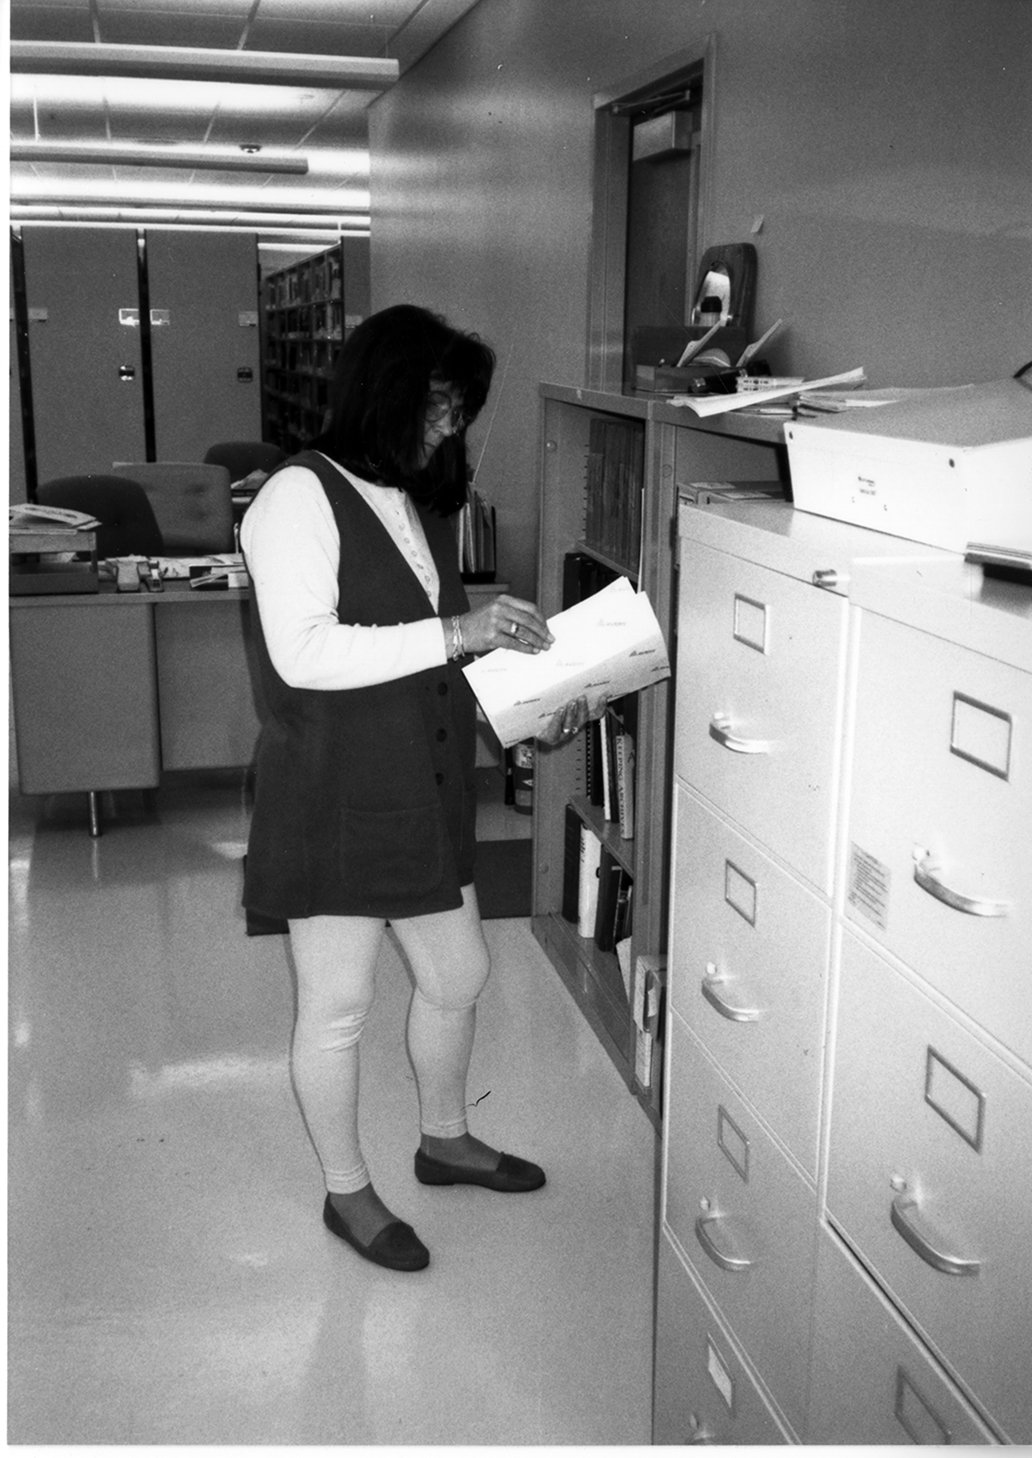 Archives assistant Trisha Henson looking through a file, 1996.  EKU Photo Collection.